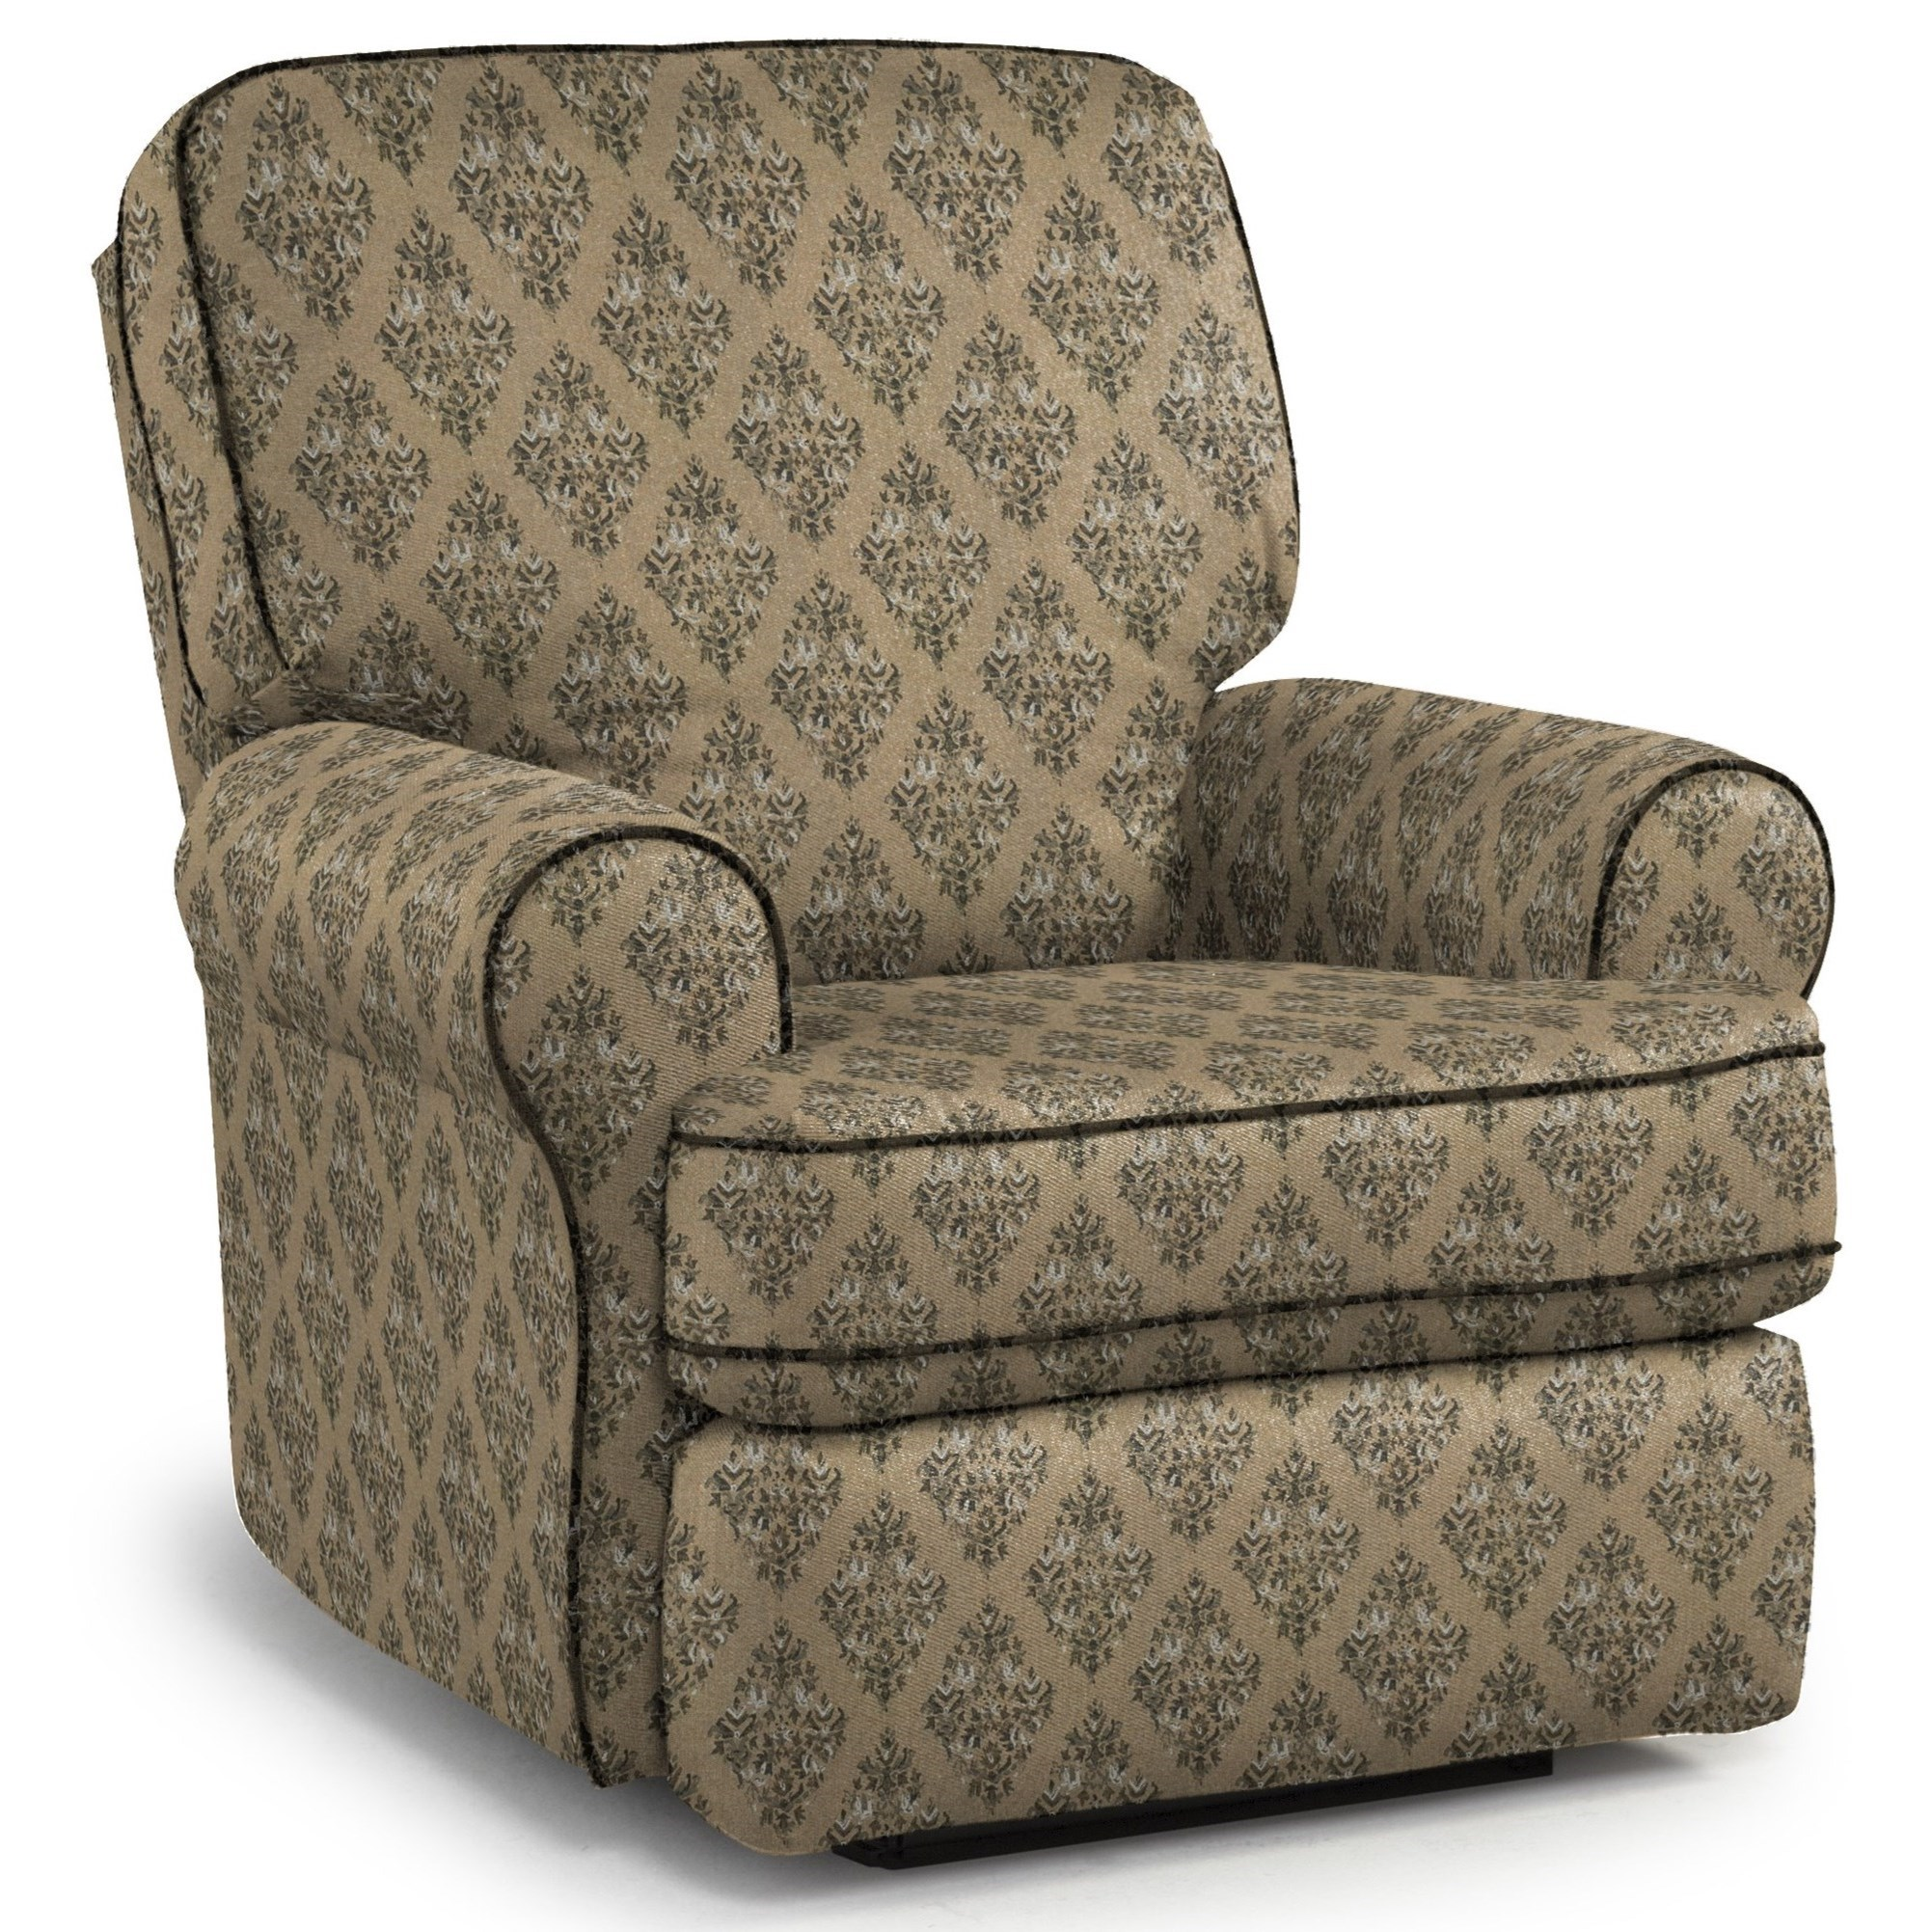 Tryp Swivel Glider Recliner by Best Home Furnishings at A1 Furniture & Mattress